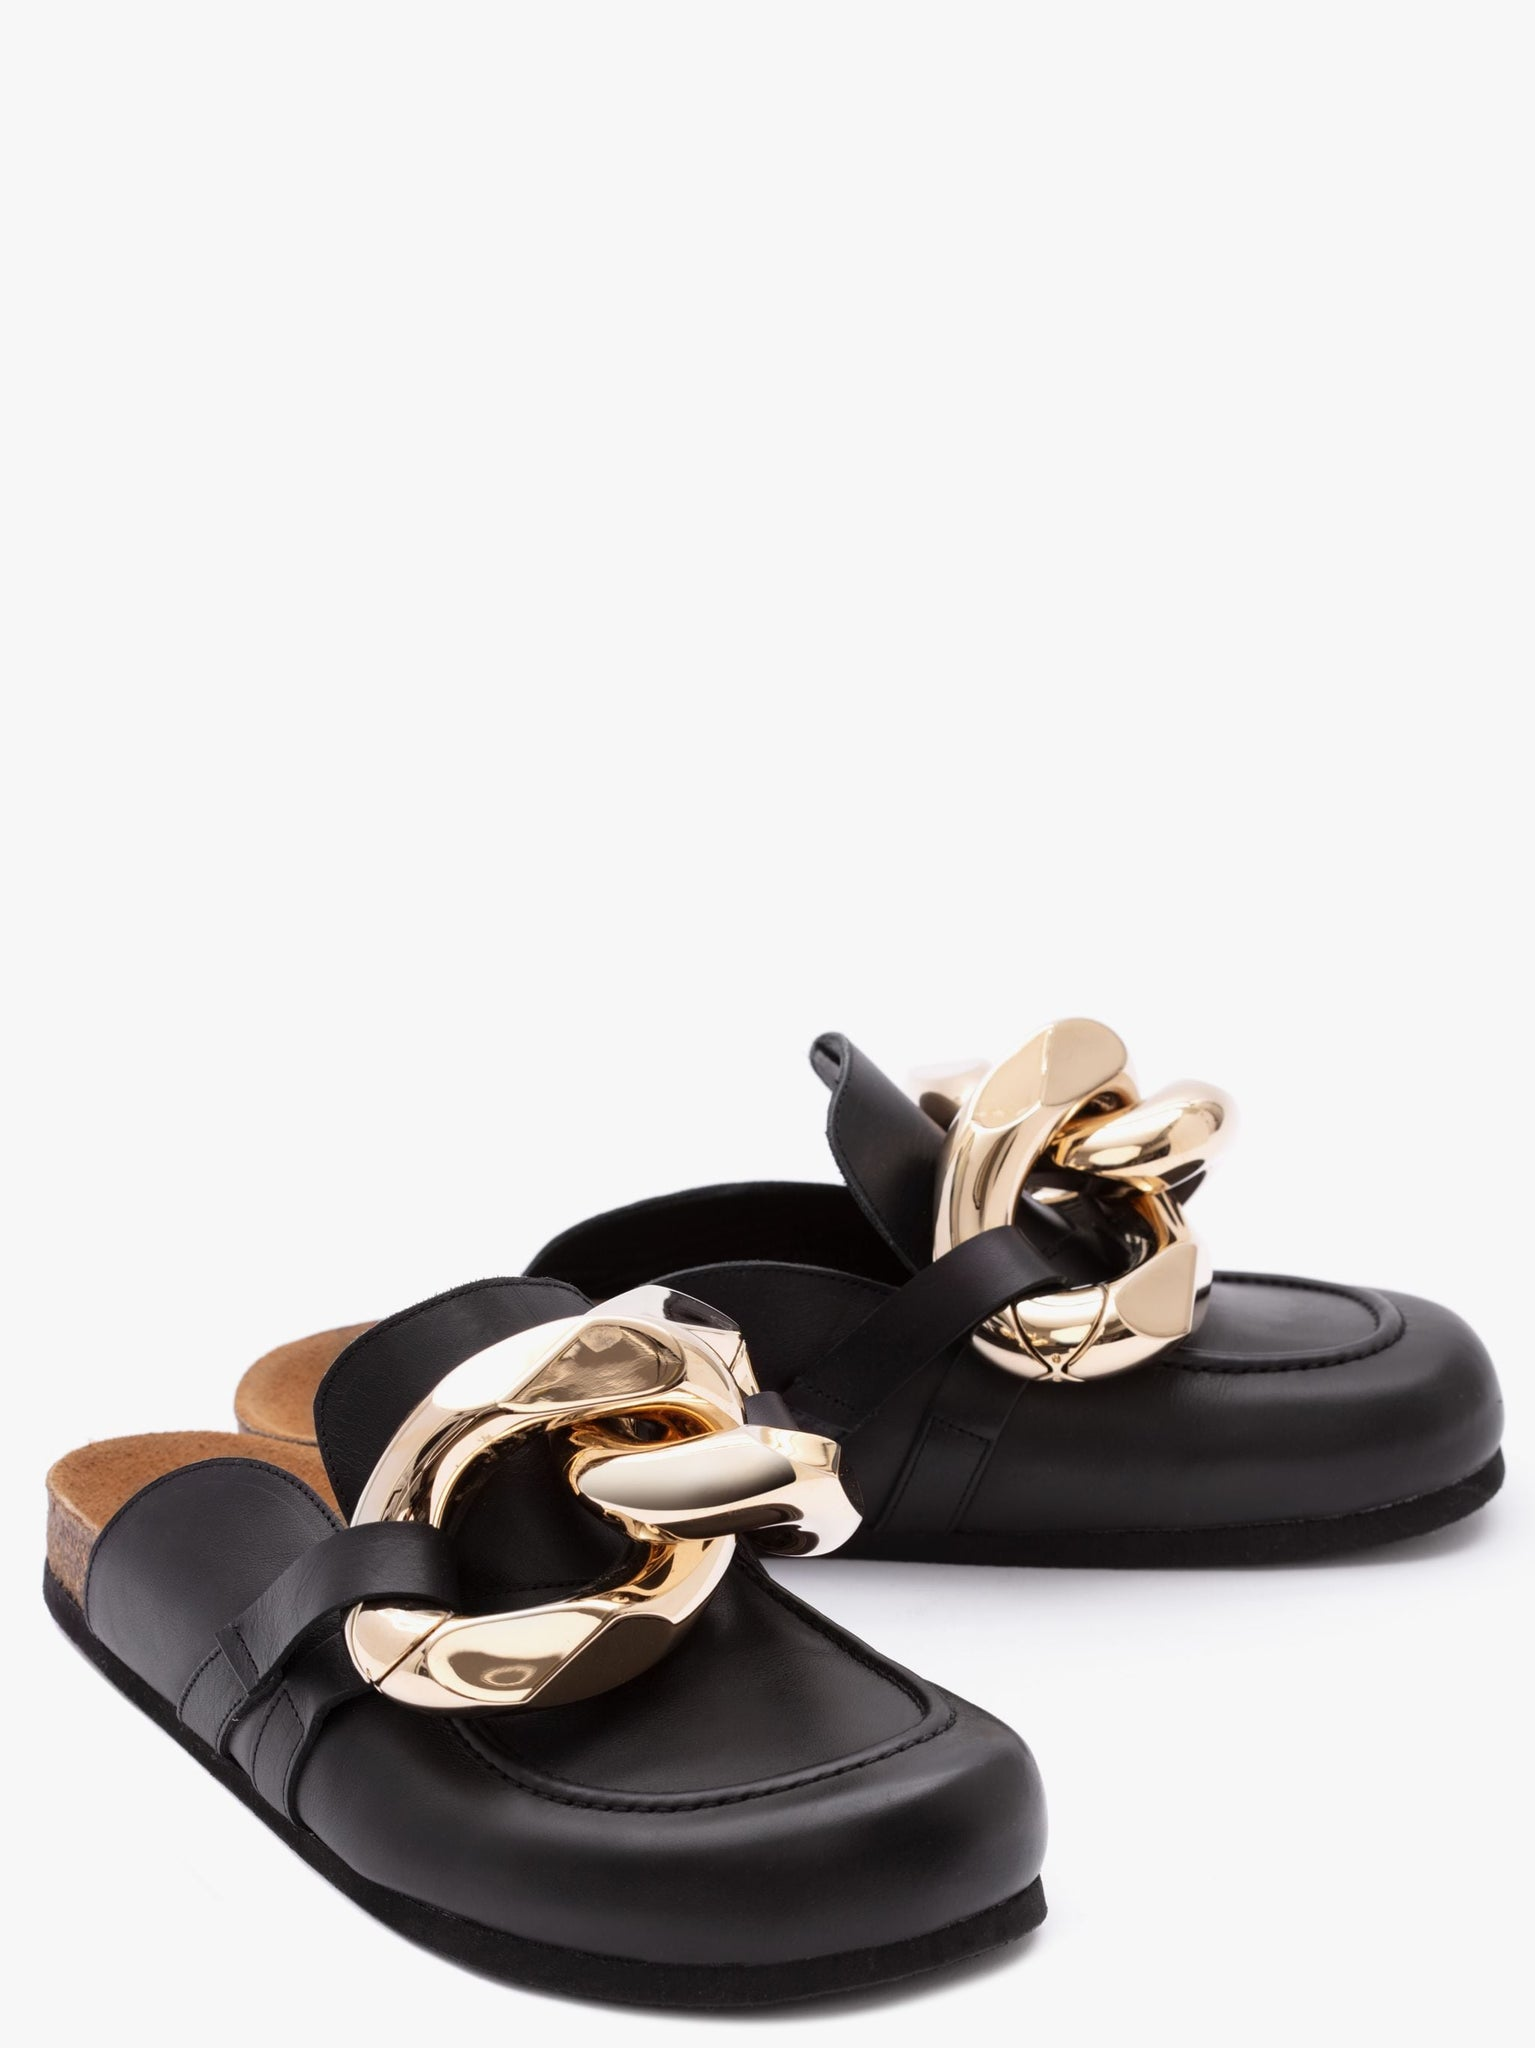 HIM Co S.p.A. SHOE JW Anderson | Chain Loafer Mules - Black